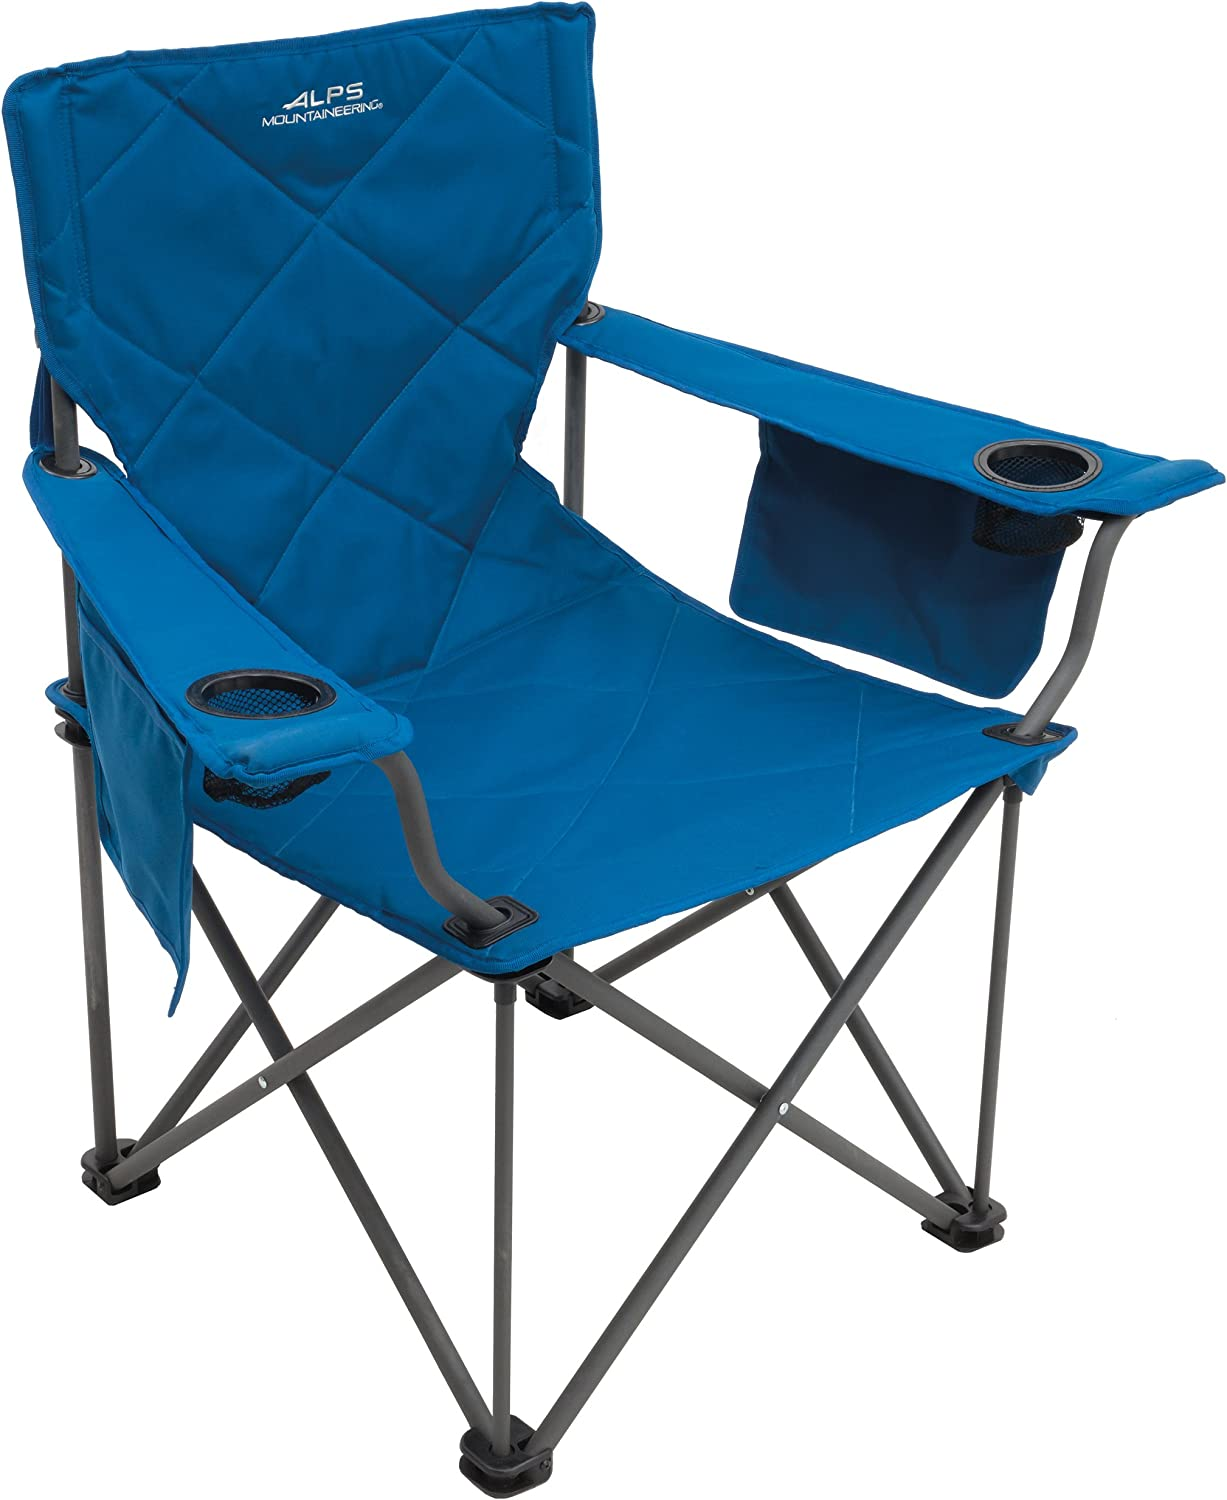 ALPS Mountaineering King Kong Chair}